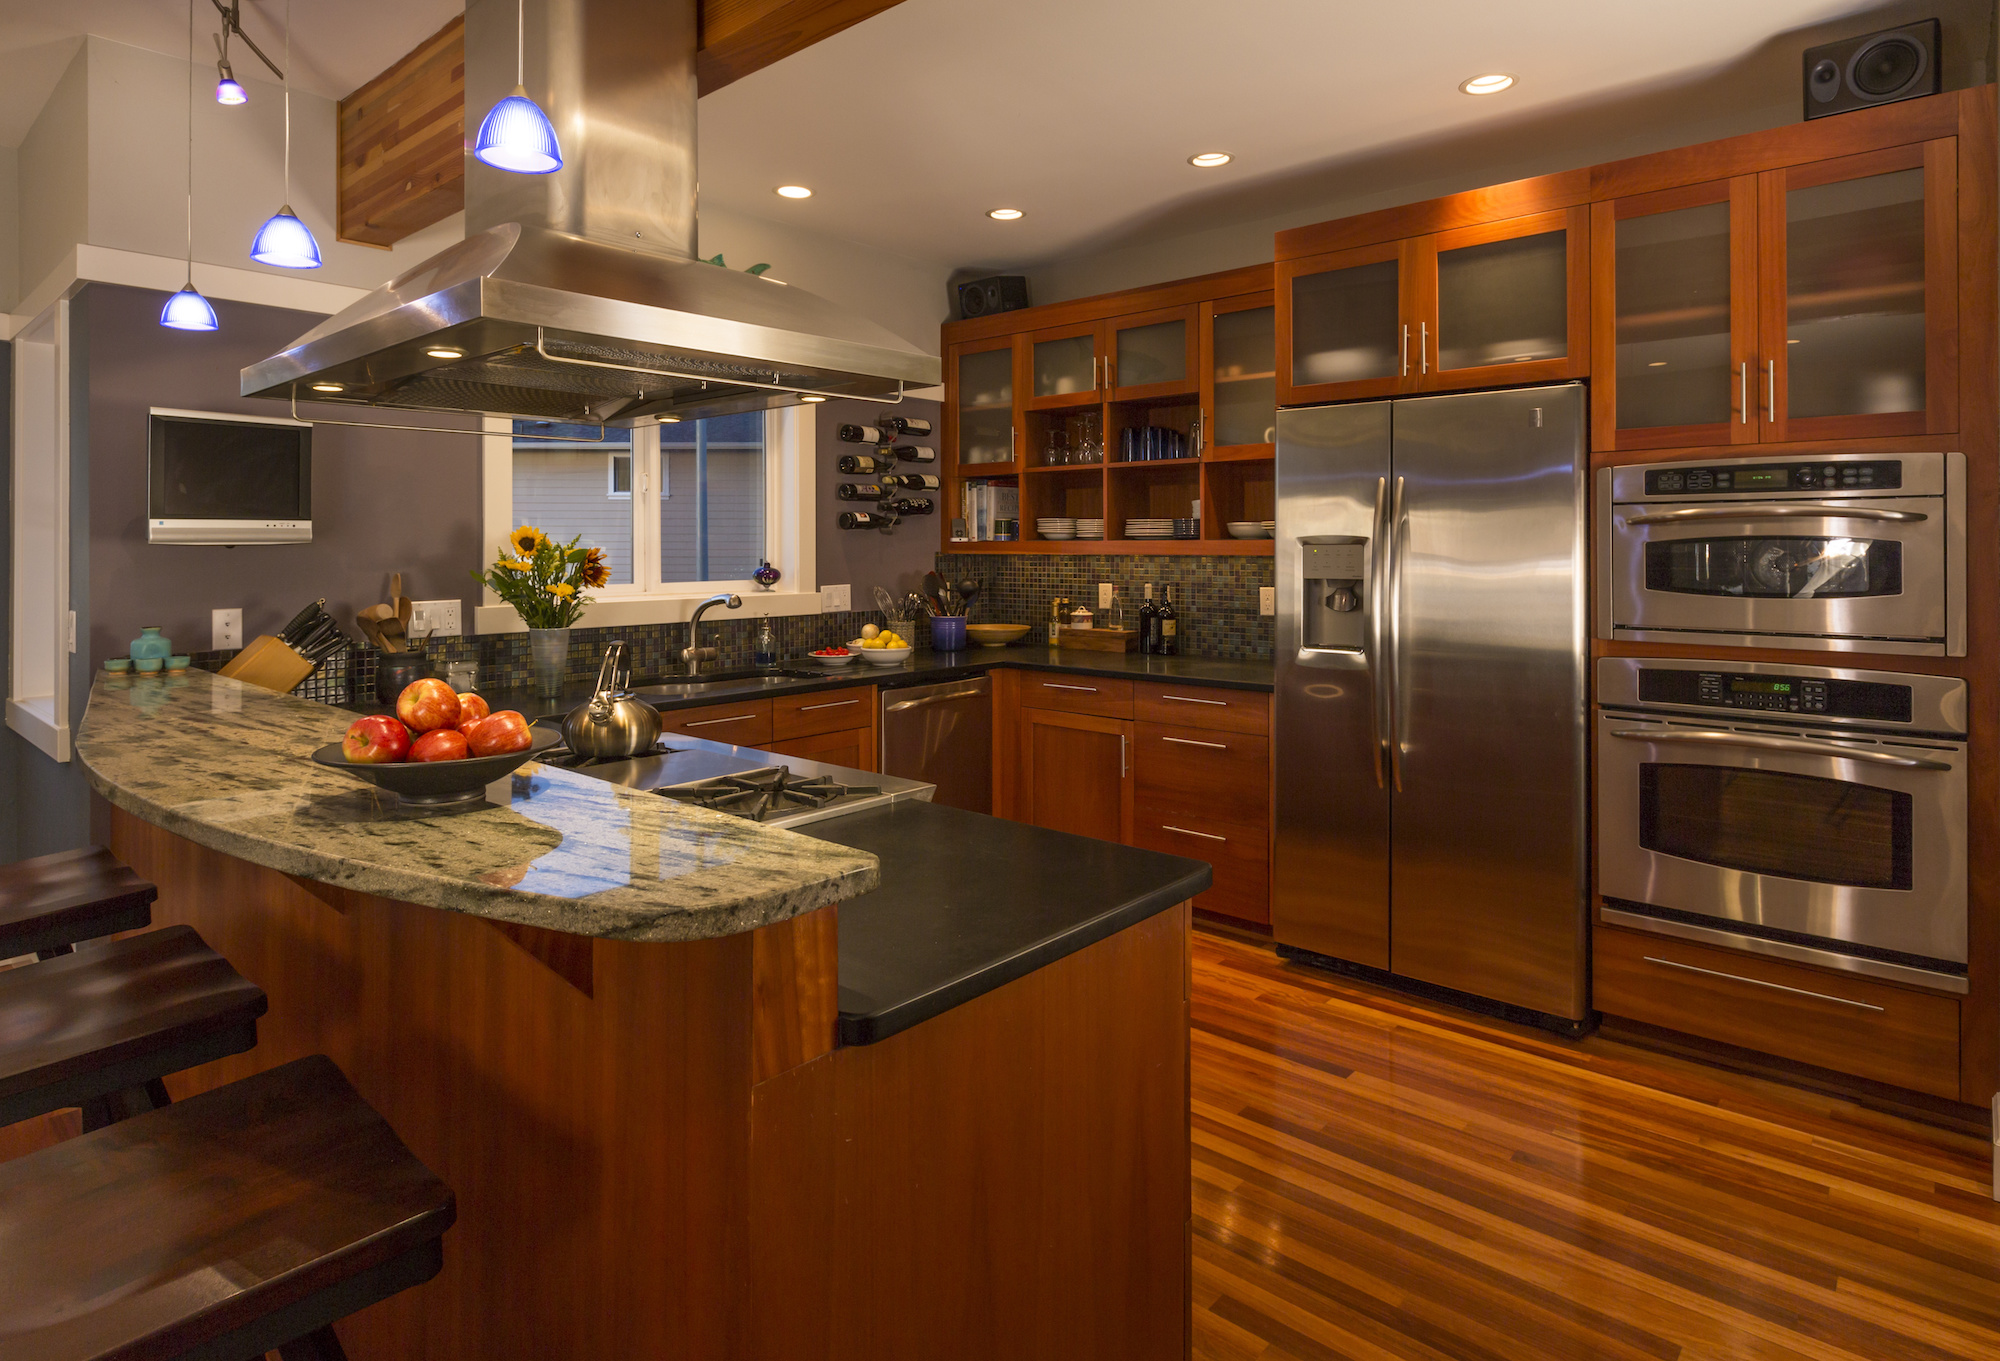 Kitchen Cabinets Wholesale Nj Custom Wholesale Kitchen Cabinets Remodeling Interior Design